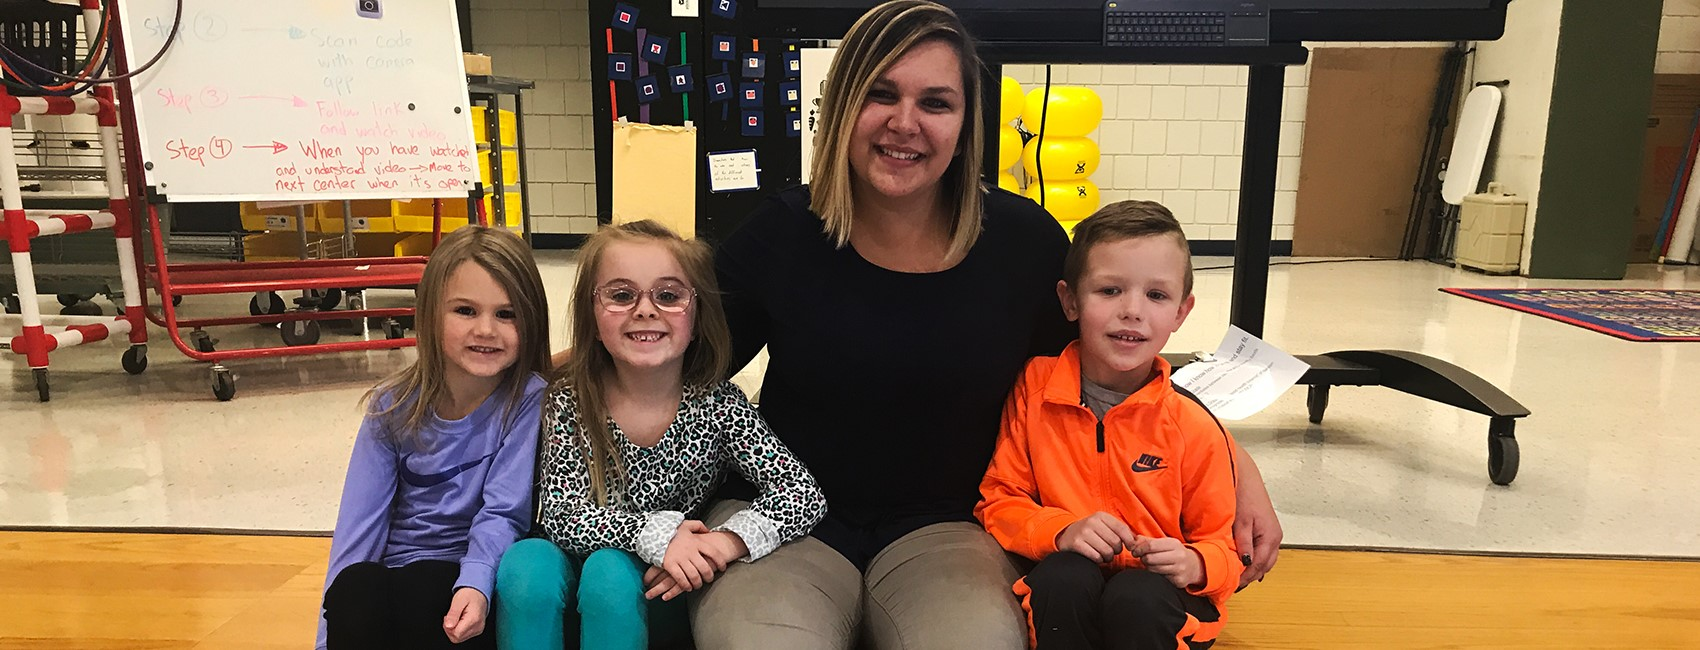 Deer Lakes celebrates National Education Support Professionals Day